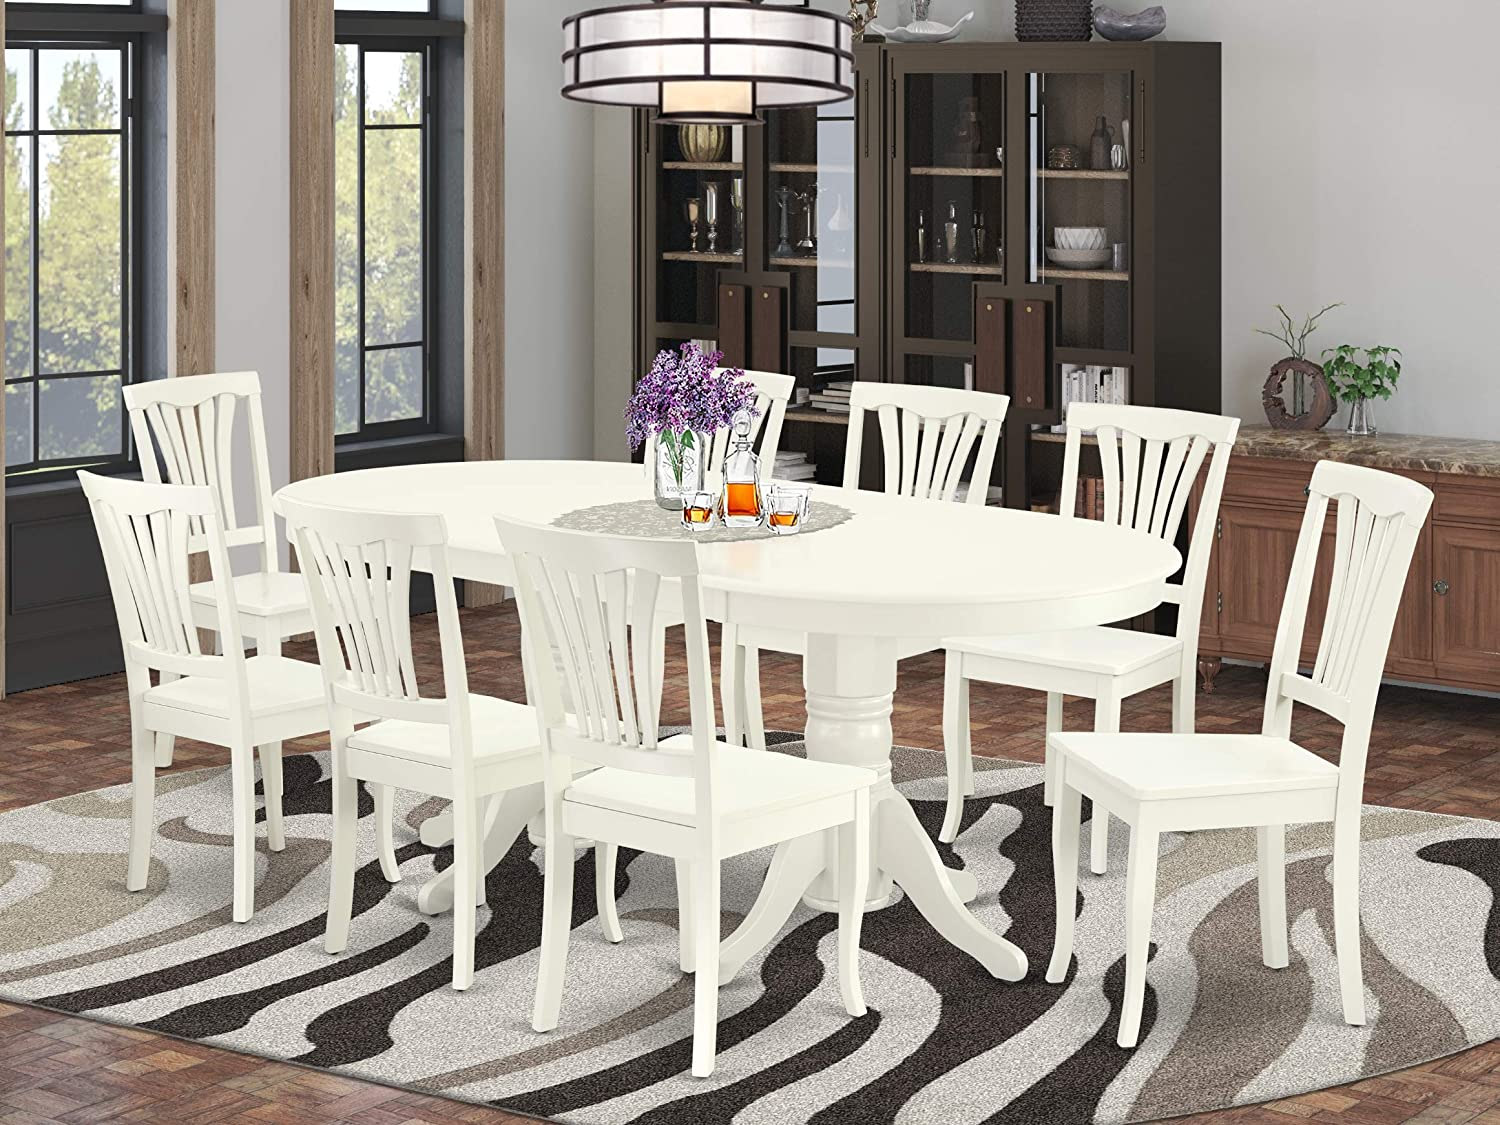 Buy 9 Pc Dining Room Set For 9 Dining Table With Butterfly Leaf ...